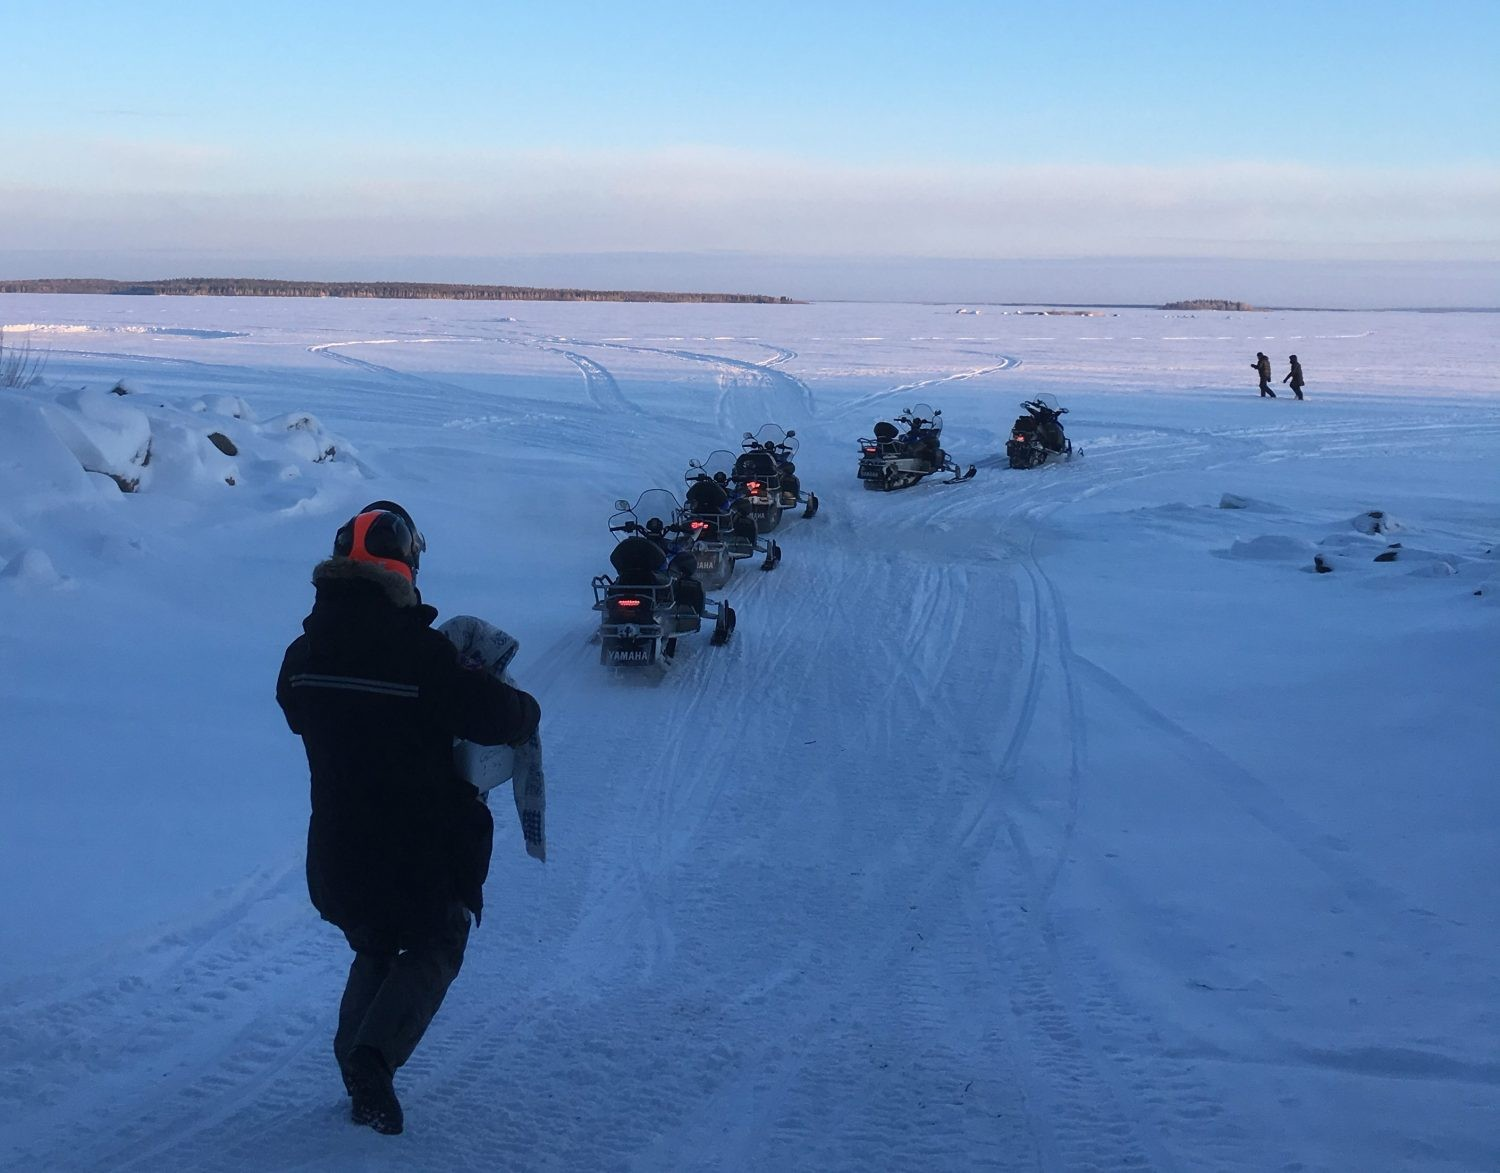 Joining a guided snowmobile tour over the frozen sea. Credit: Chris Bramley